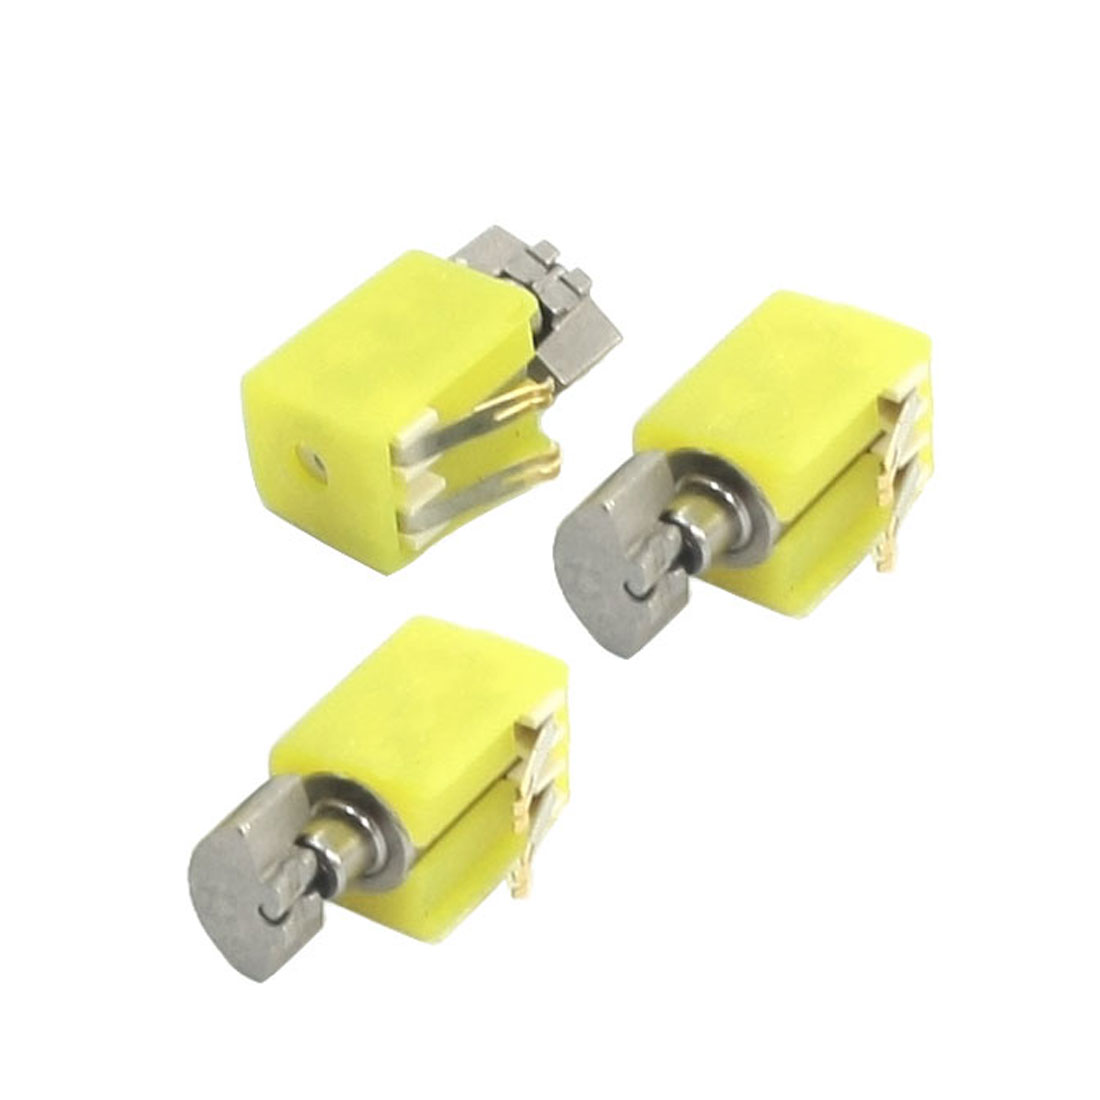 3pcs-DC-3V-4mm-x-6-5mm-Coreless-Vibrating-Motor-Toy-900RPM